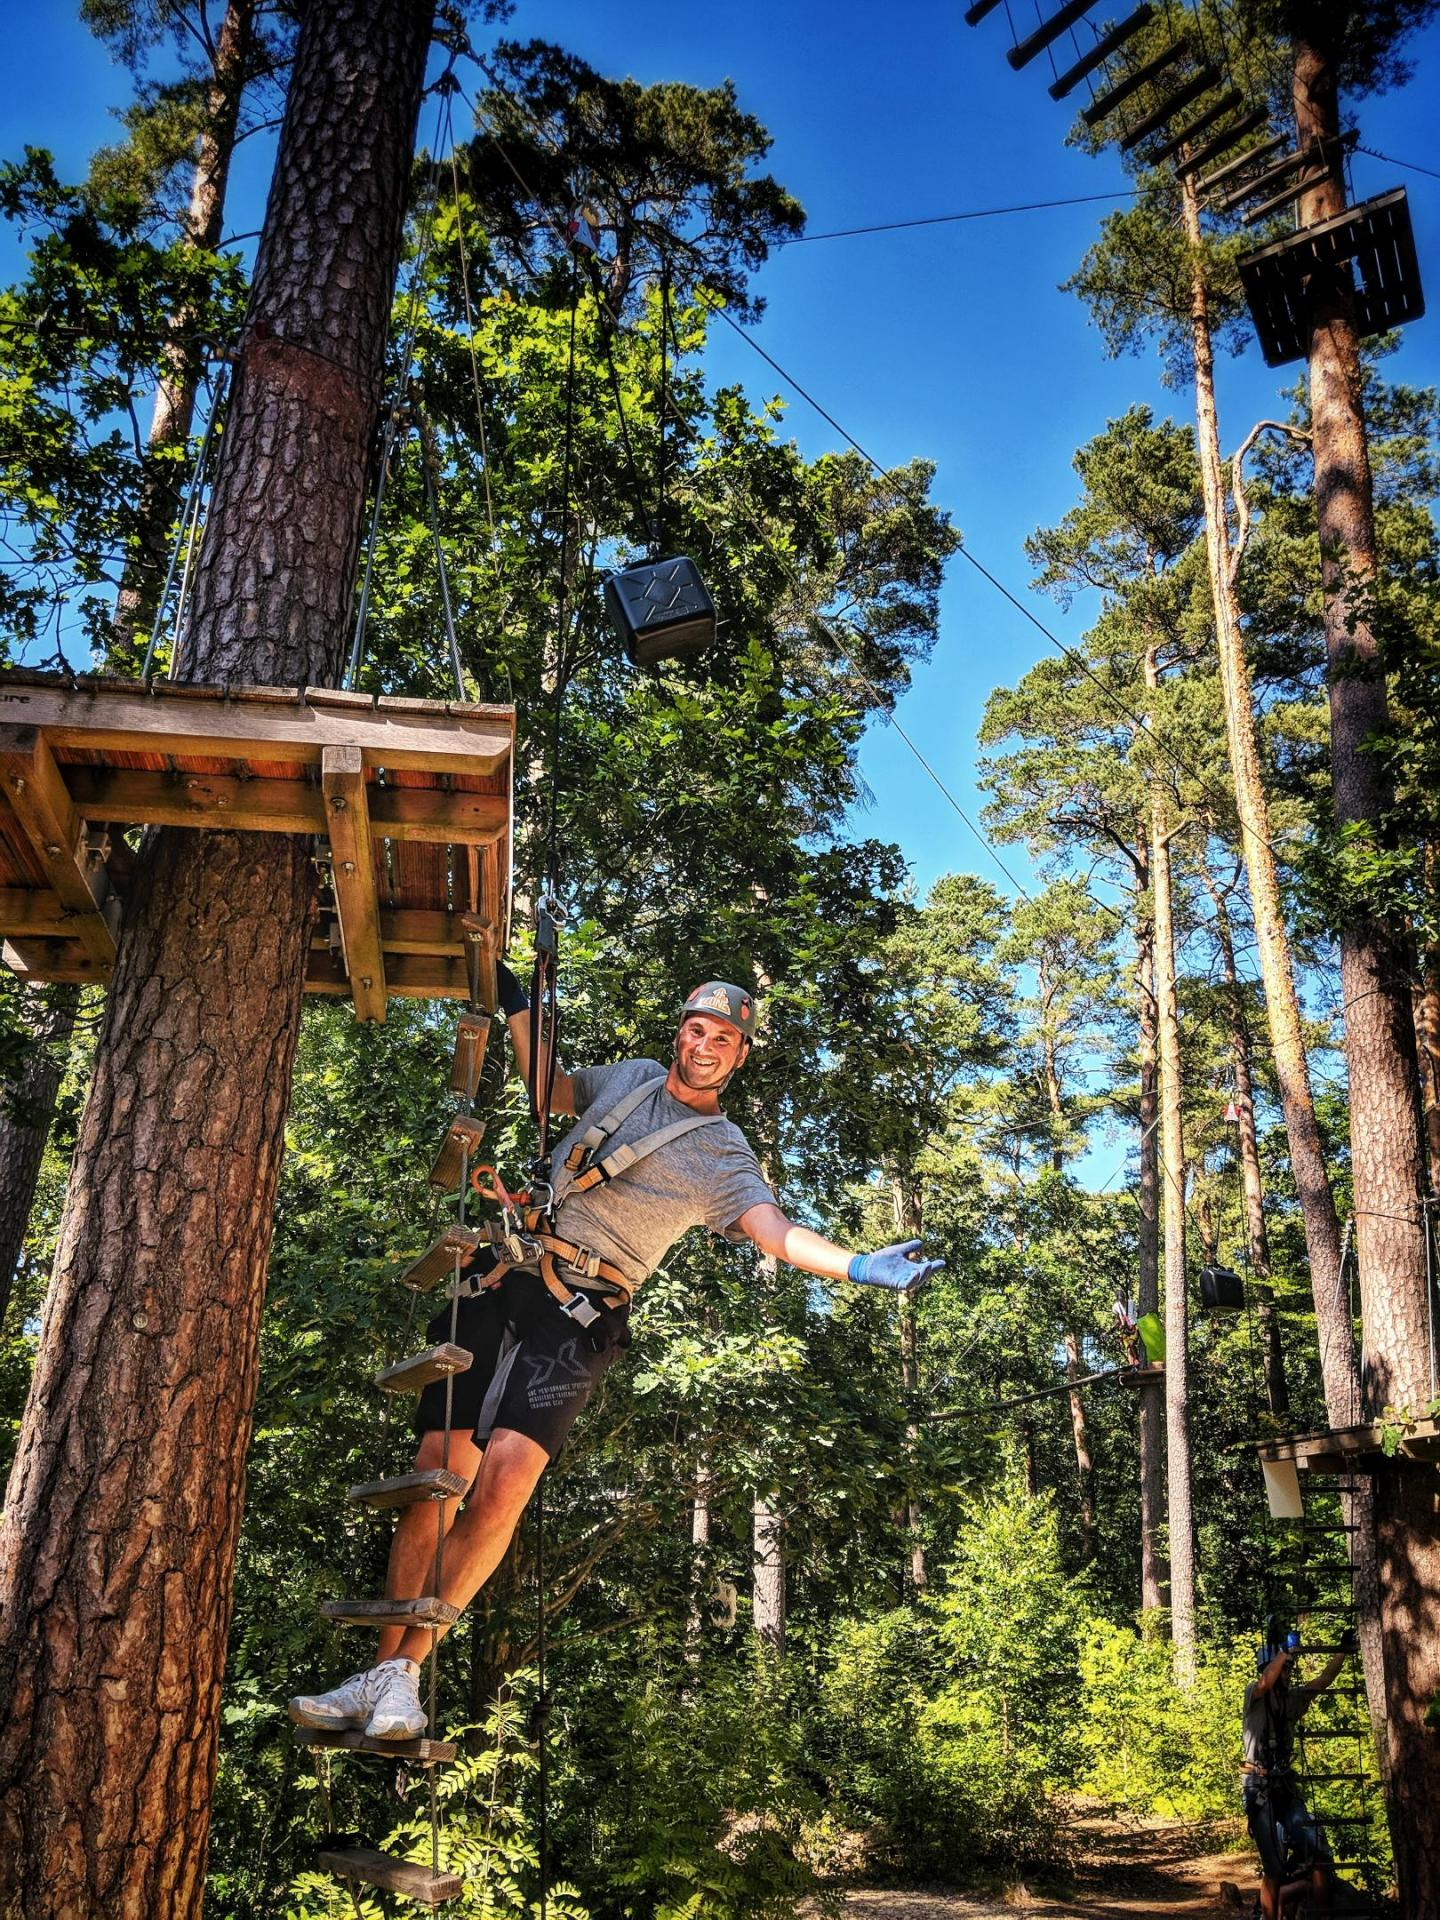 Man climb adventure course